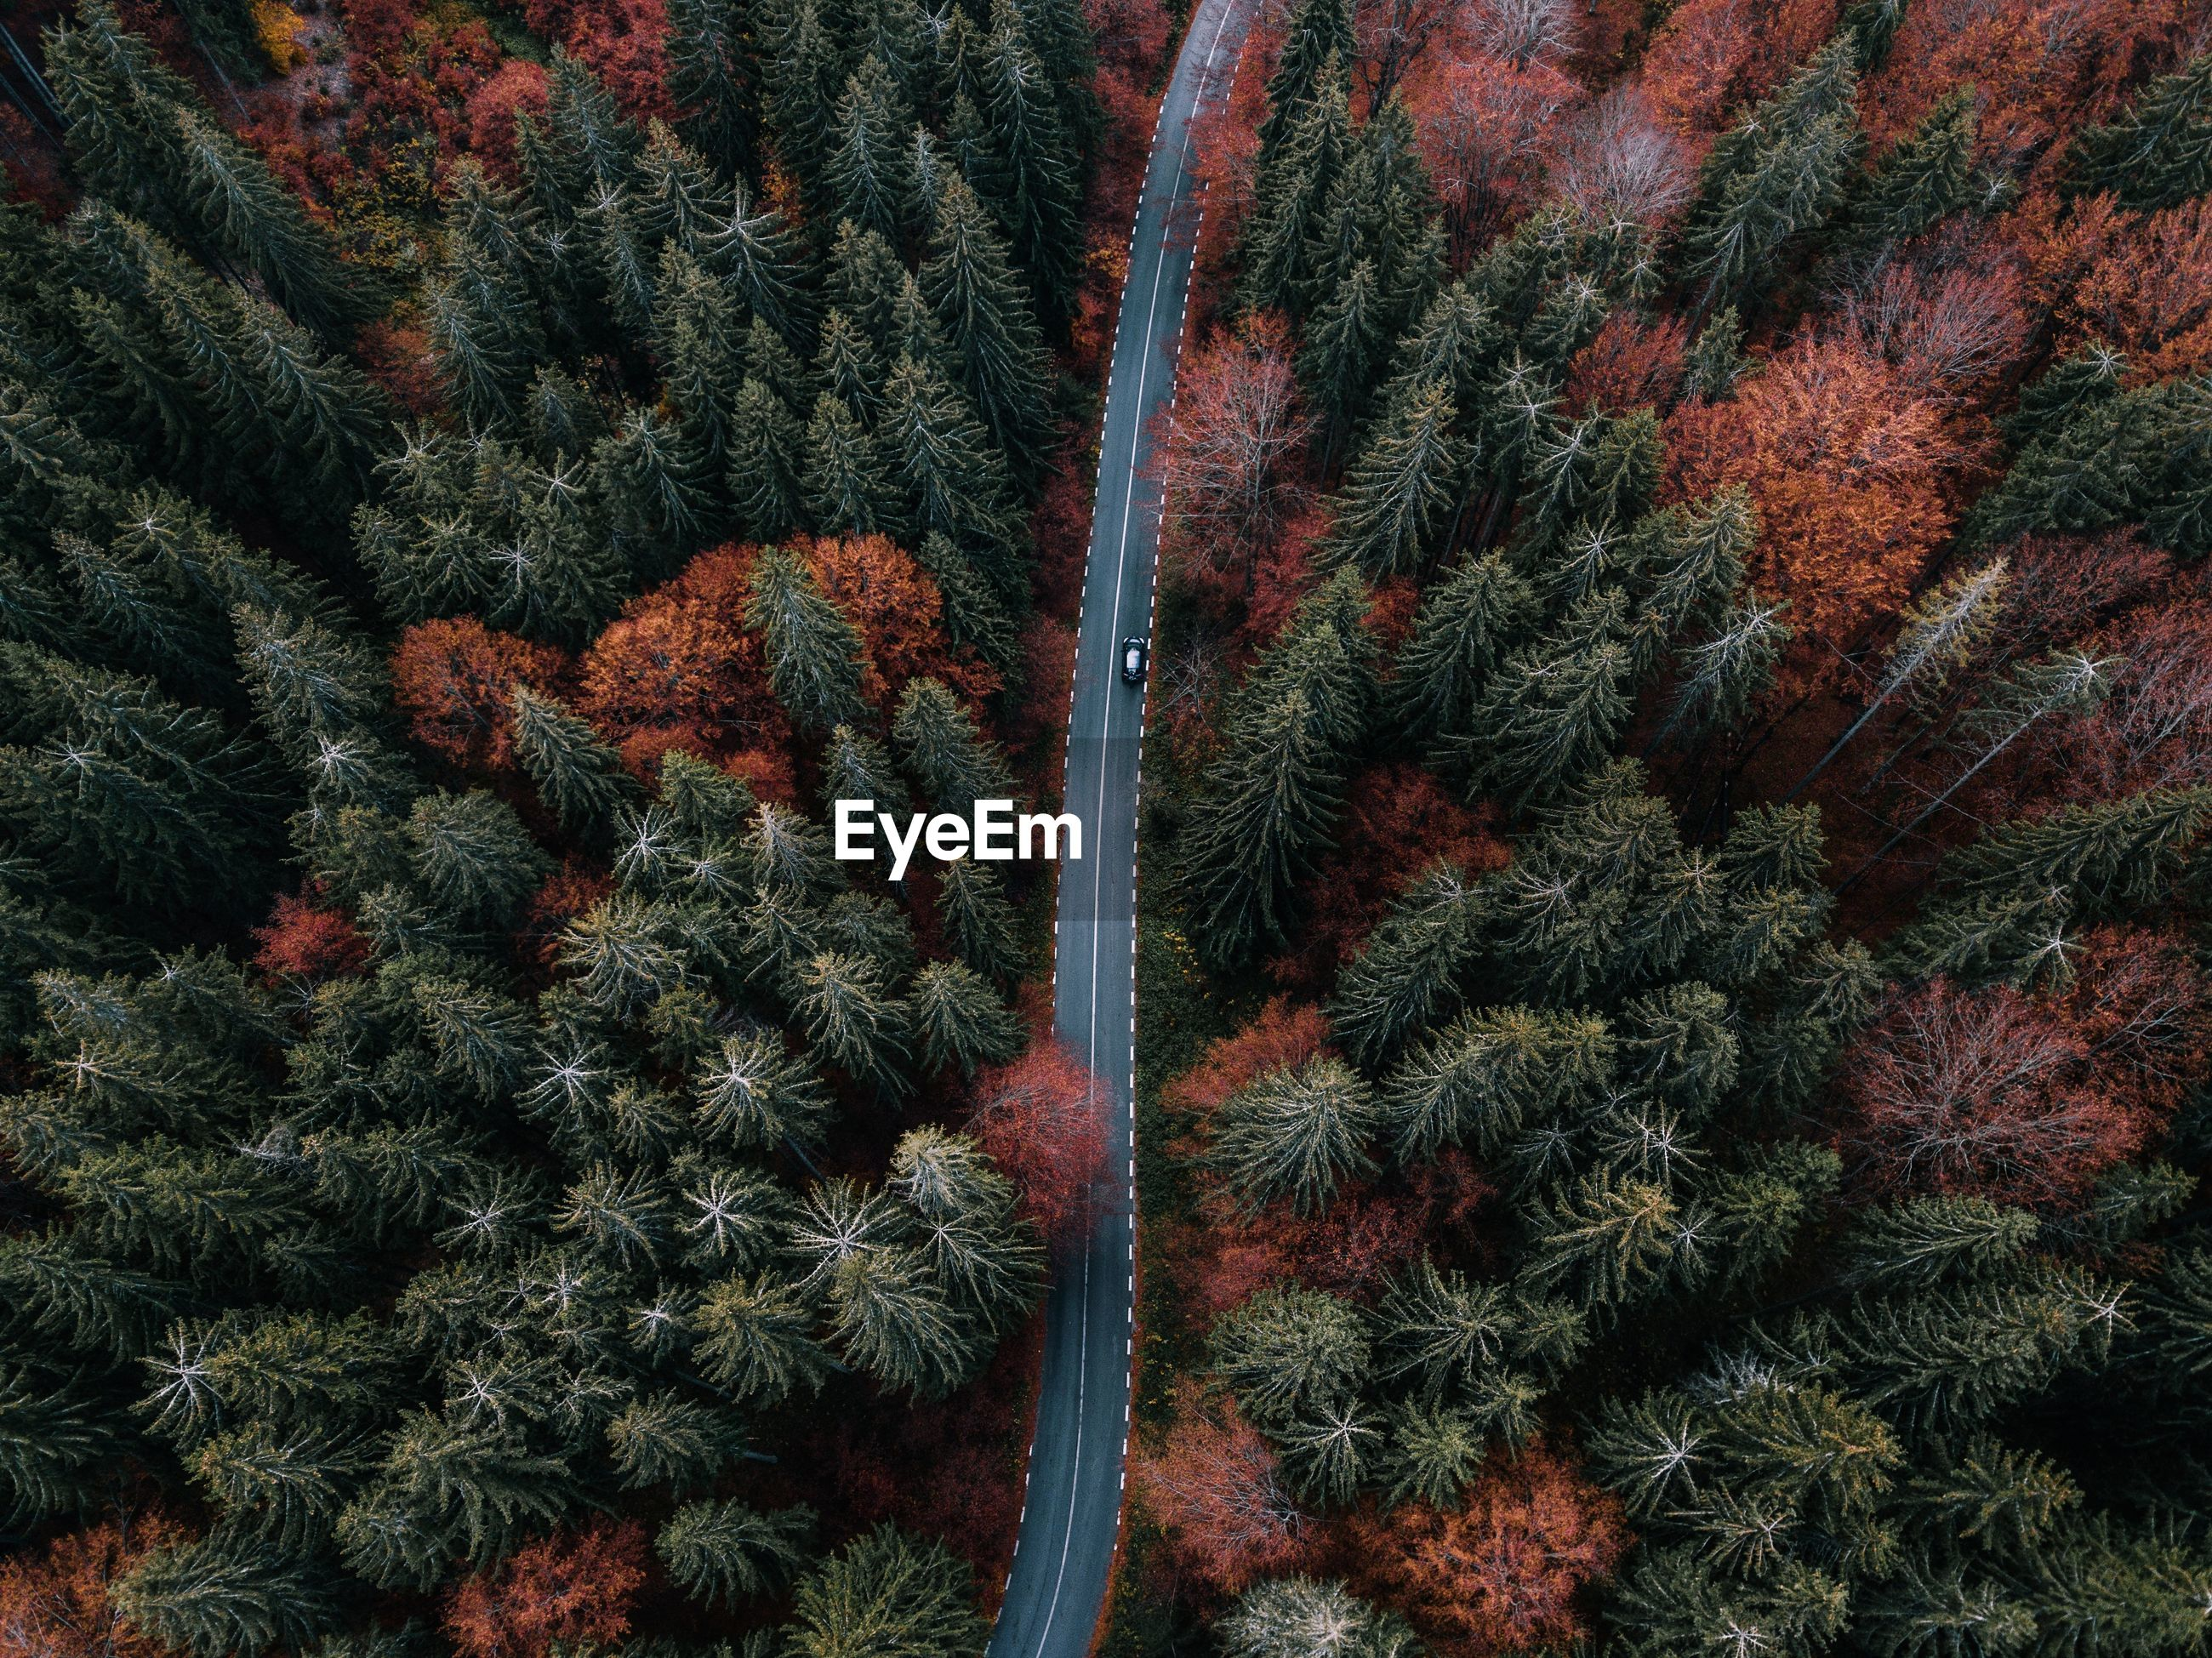 Aerial view of road amidst pine trees in forest during autumn